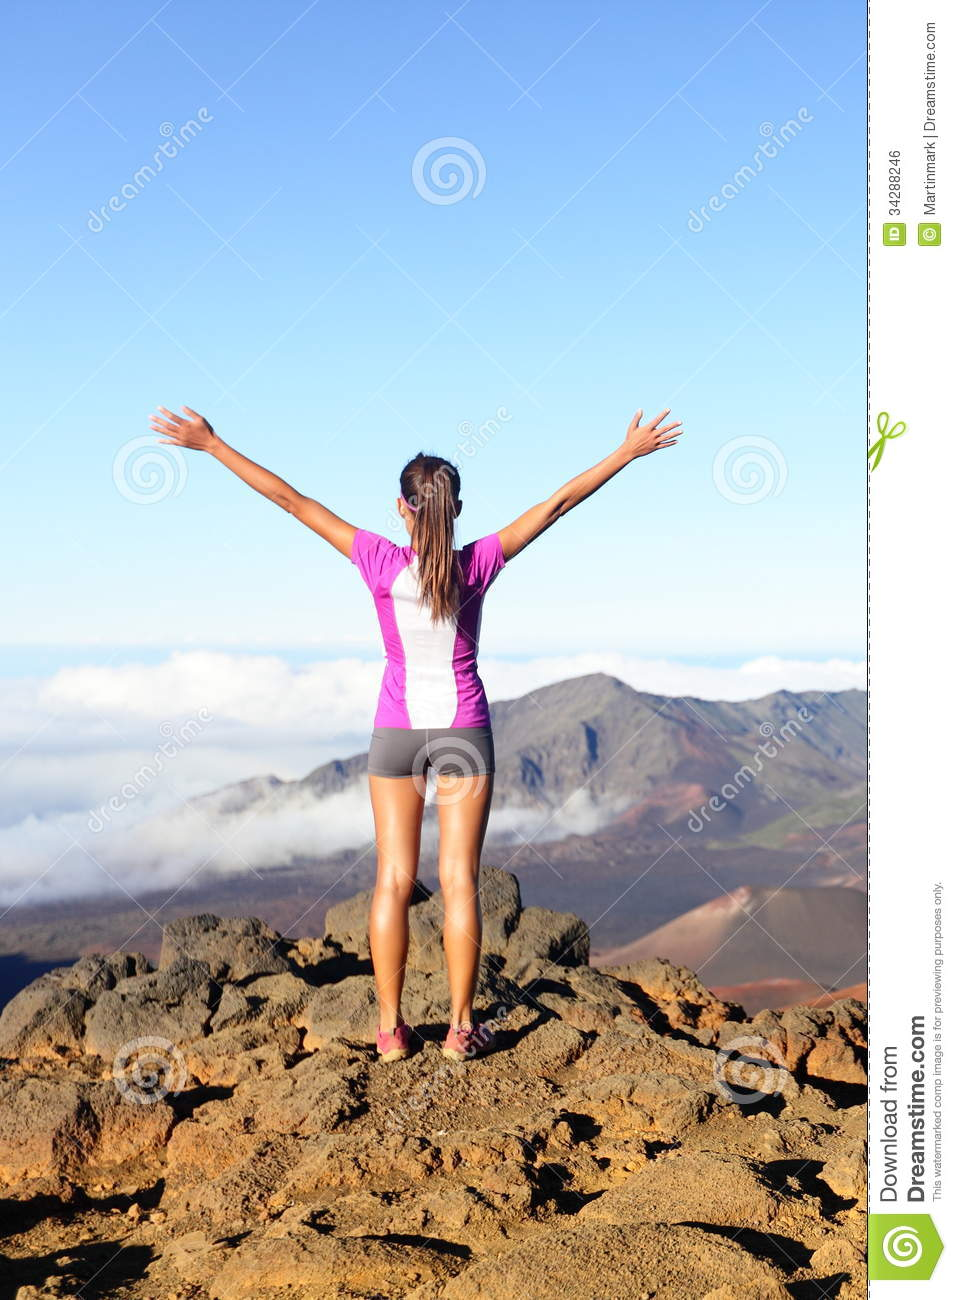 Success and achievement - hiking woman on top